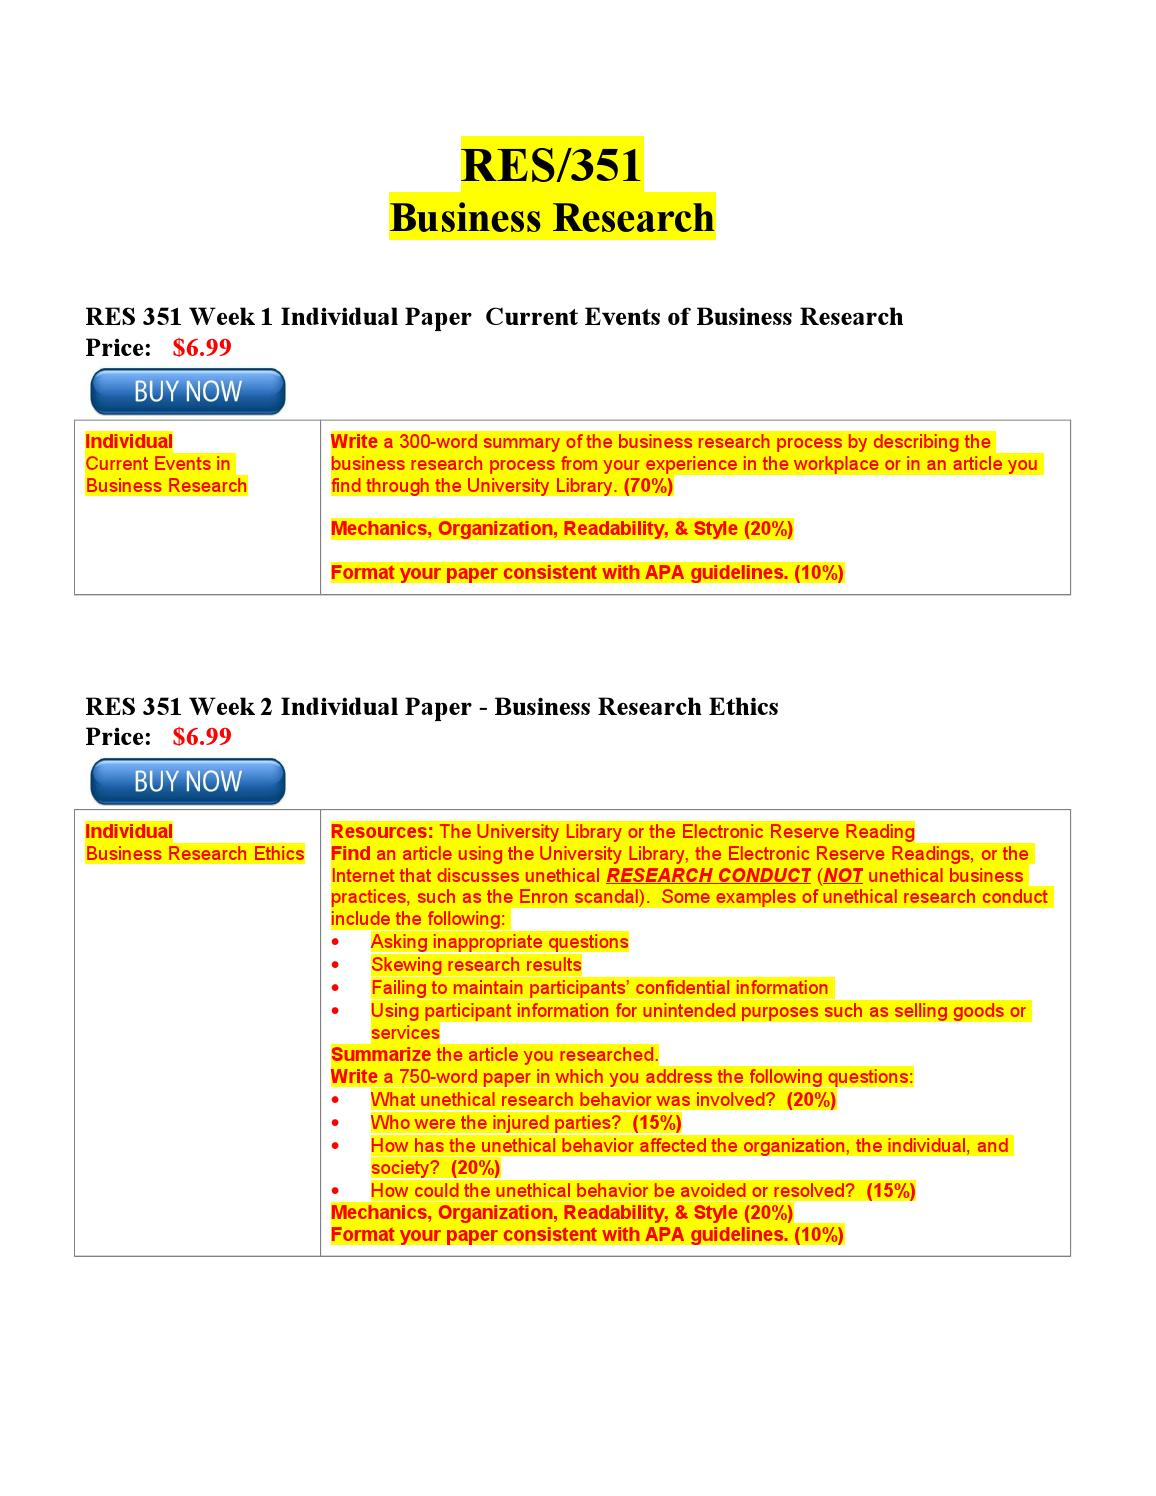 preparing to conduct business research part 4 The text in this article is licensed under the creative commons-license attribution 40 international (cc by 40) this means you're free to copy, share and adapt any parts (or all) of the text in the article, as long as you give appropriate credit and provide a link/reference to this page.